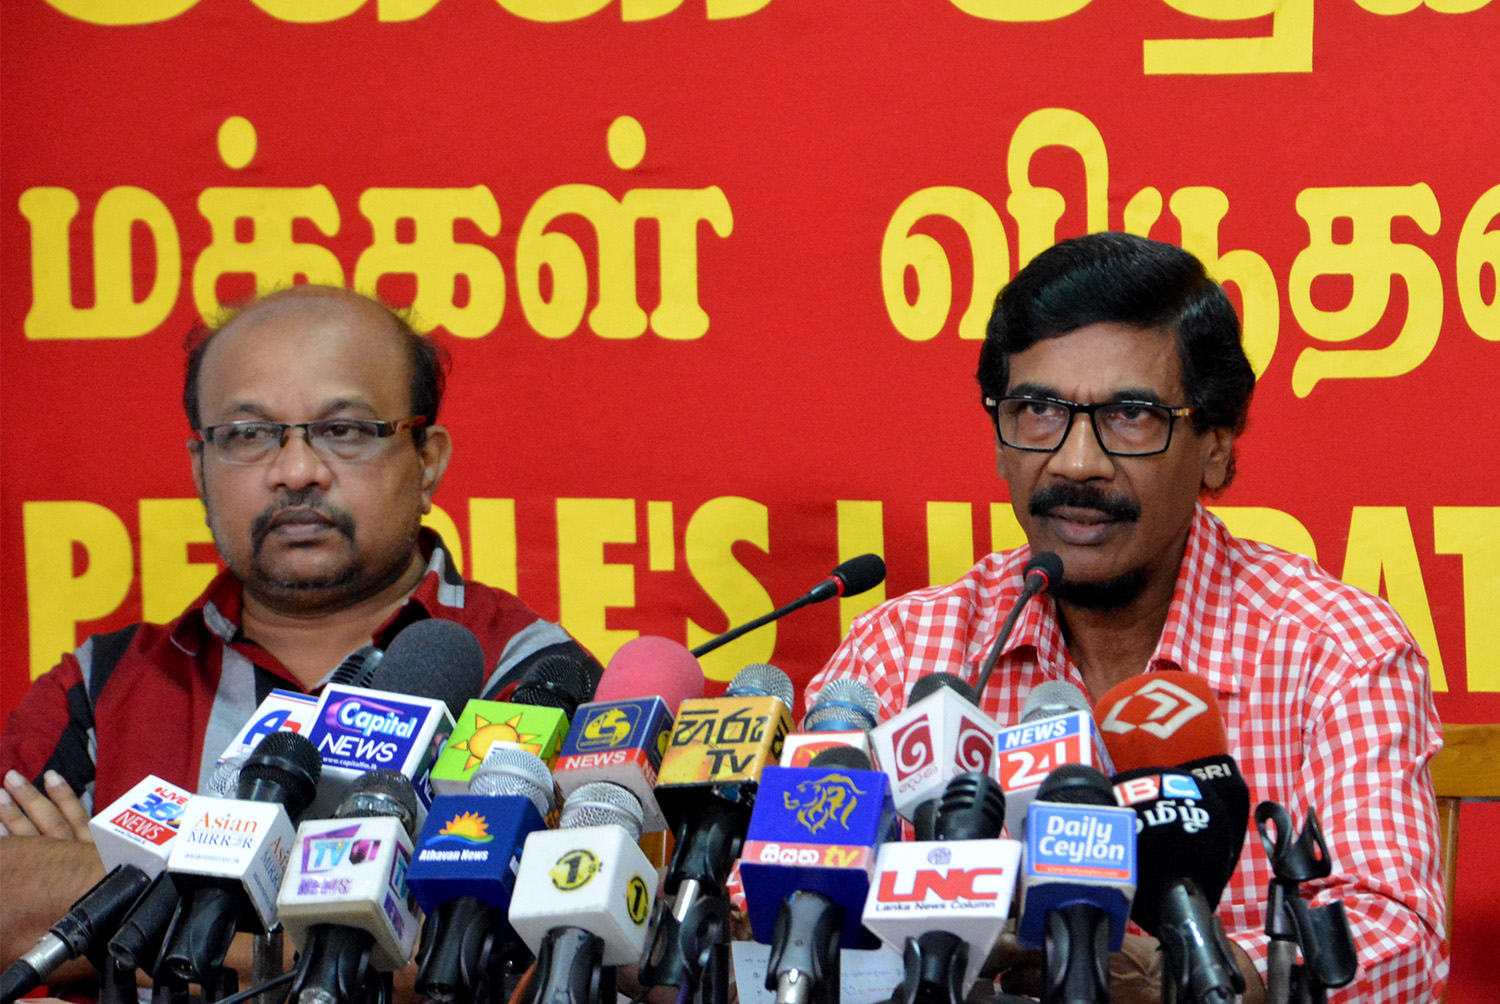 If fuel prices were increased according to formula, introduce formula to increase people's incomes – JVP tells Govt.